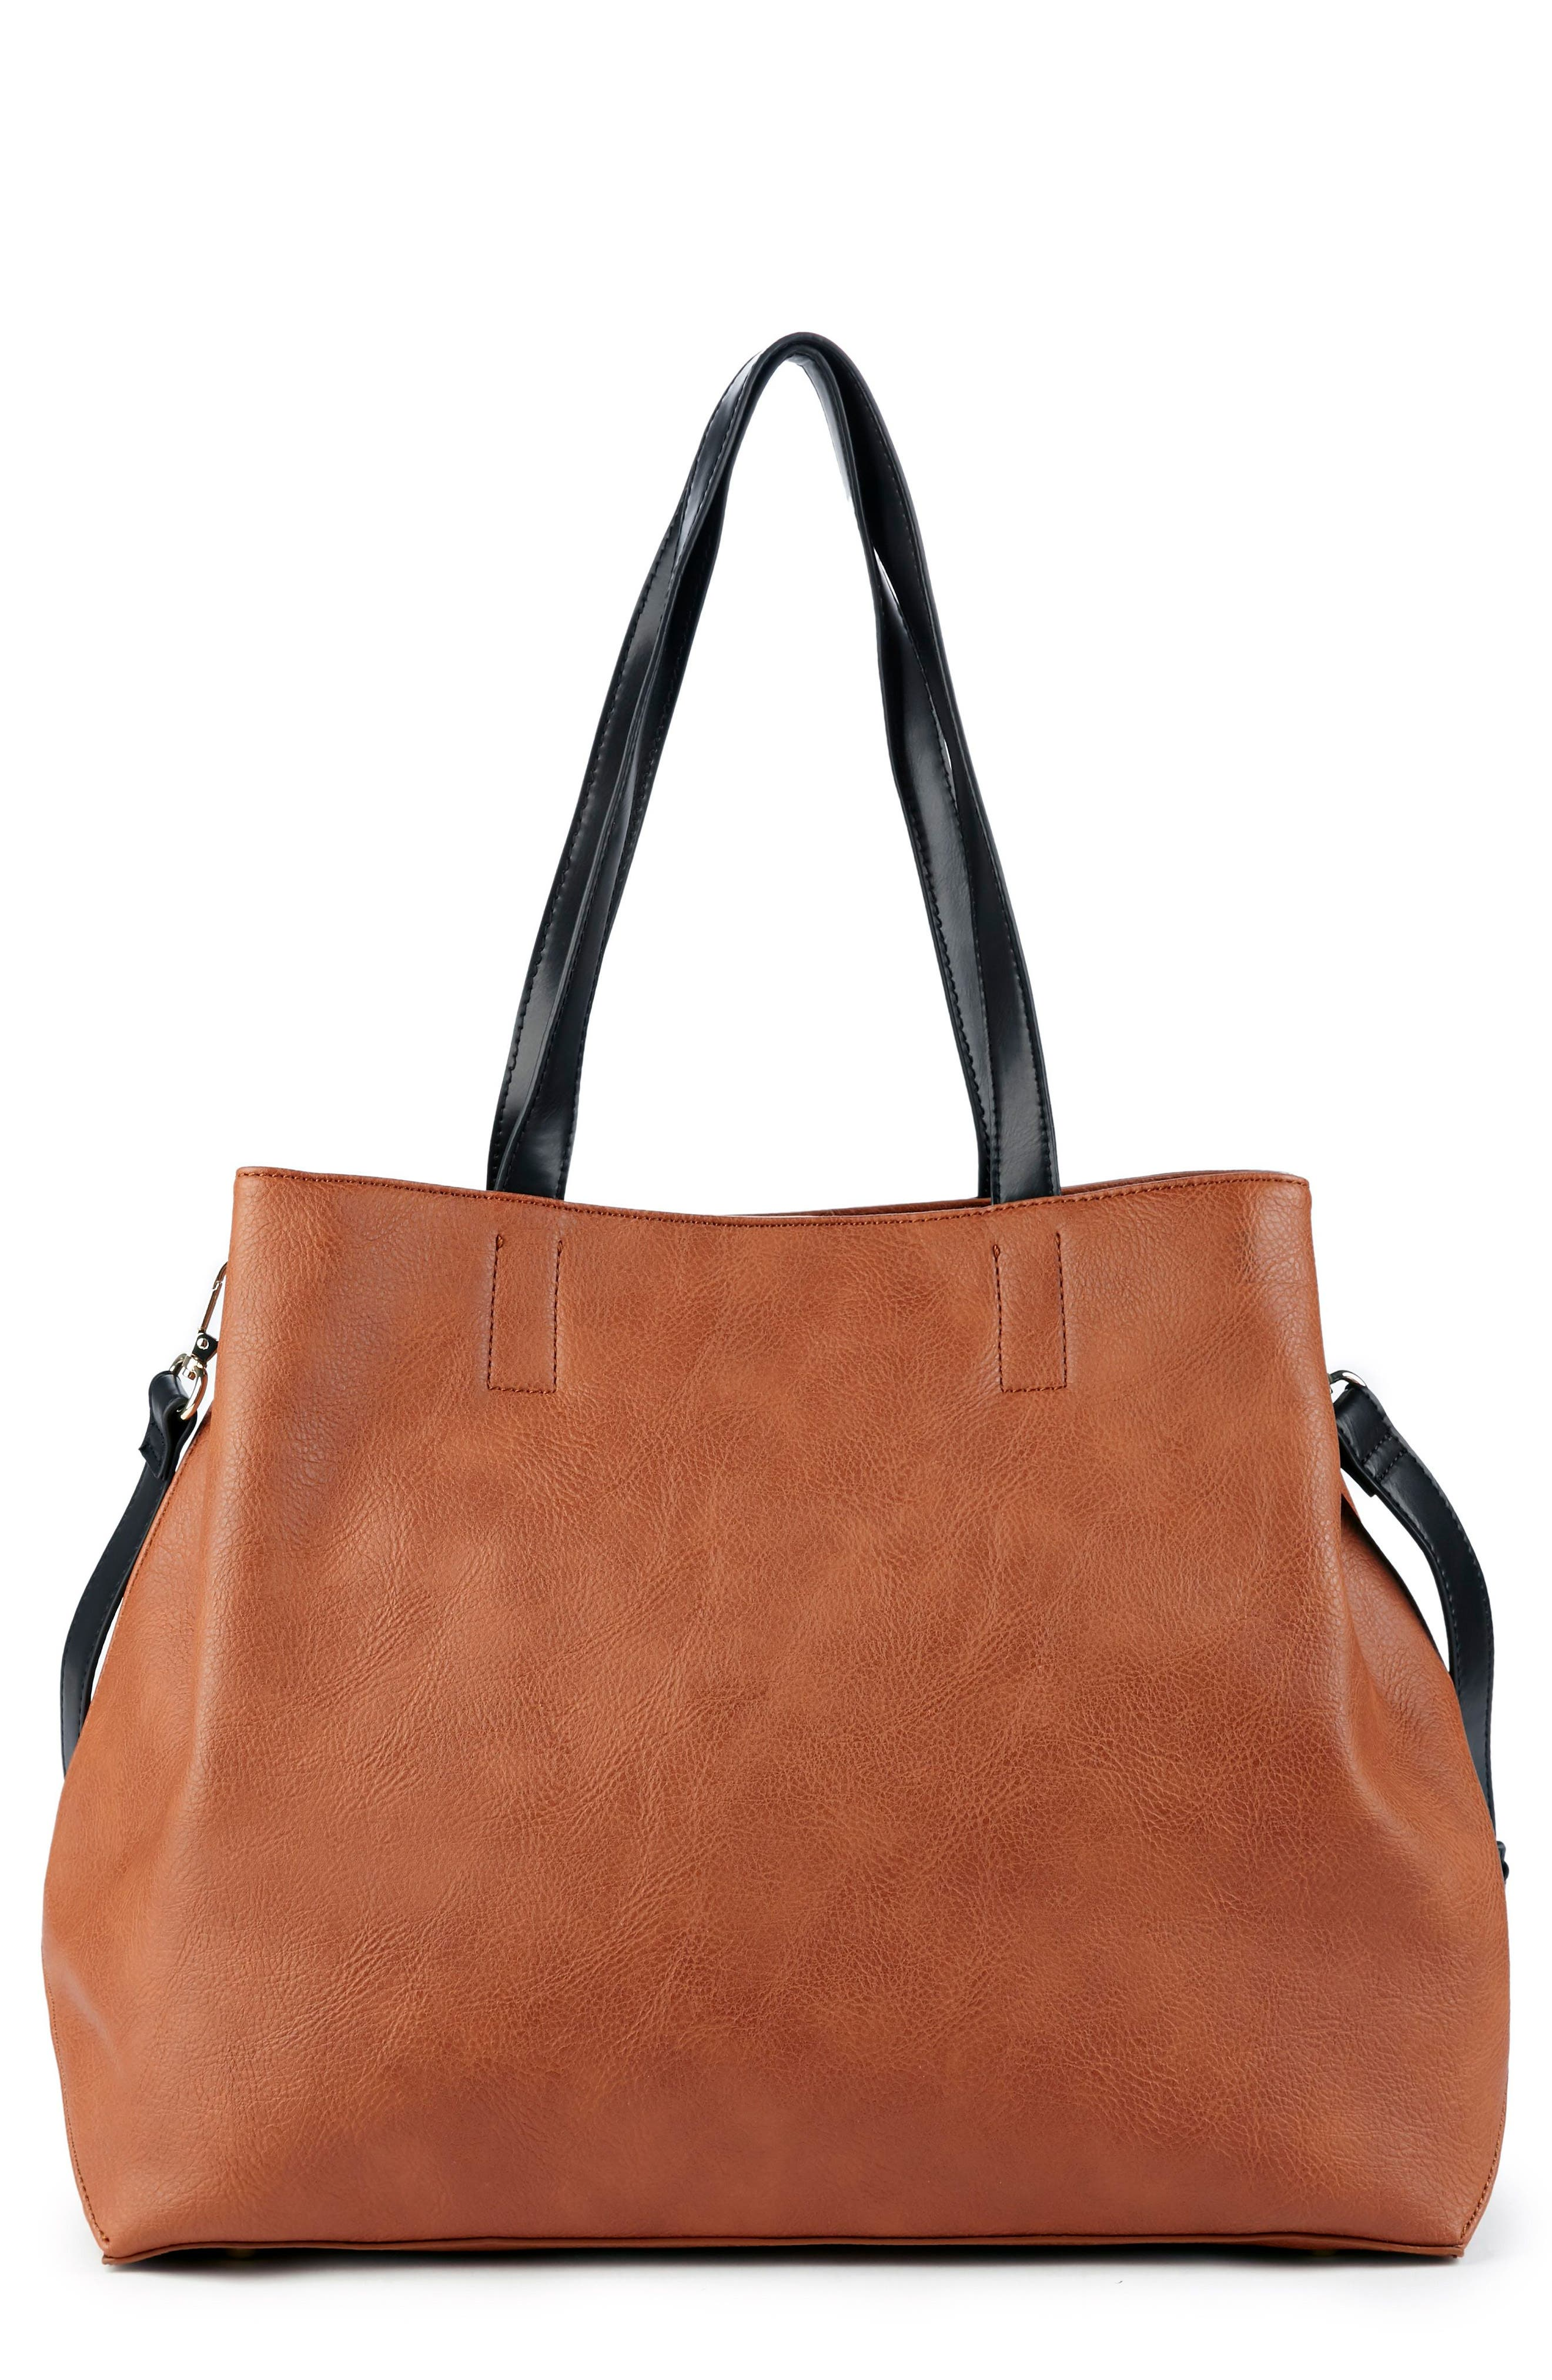 Alternate Image 1 Selected - Sole Society Hester Faux Leather Tote